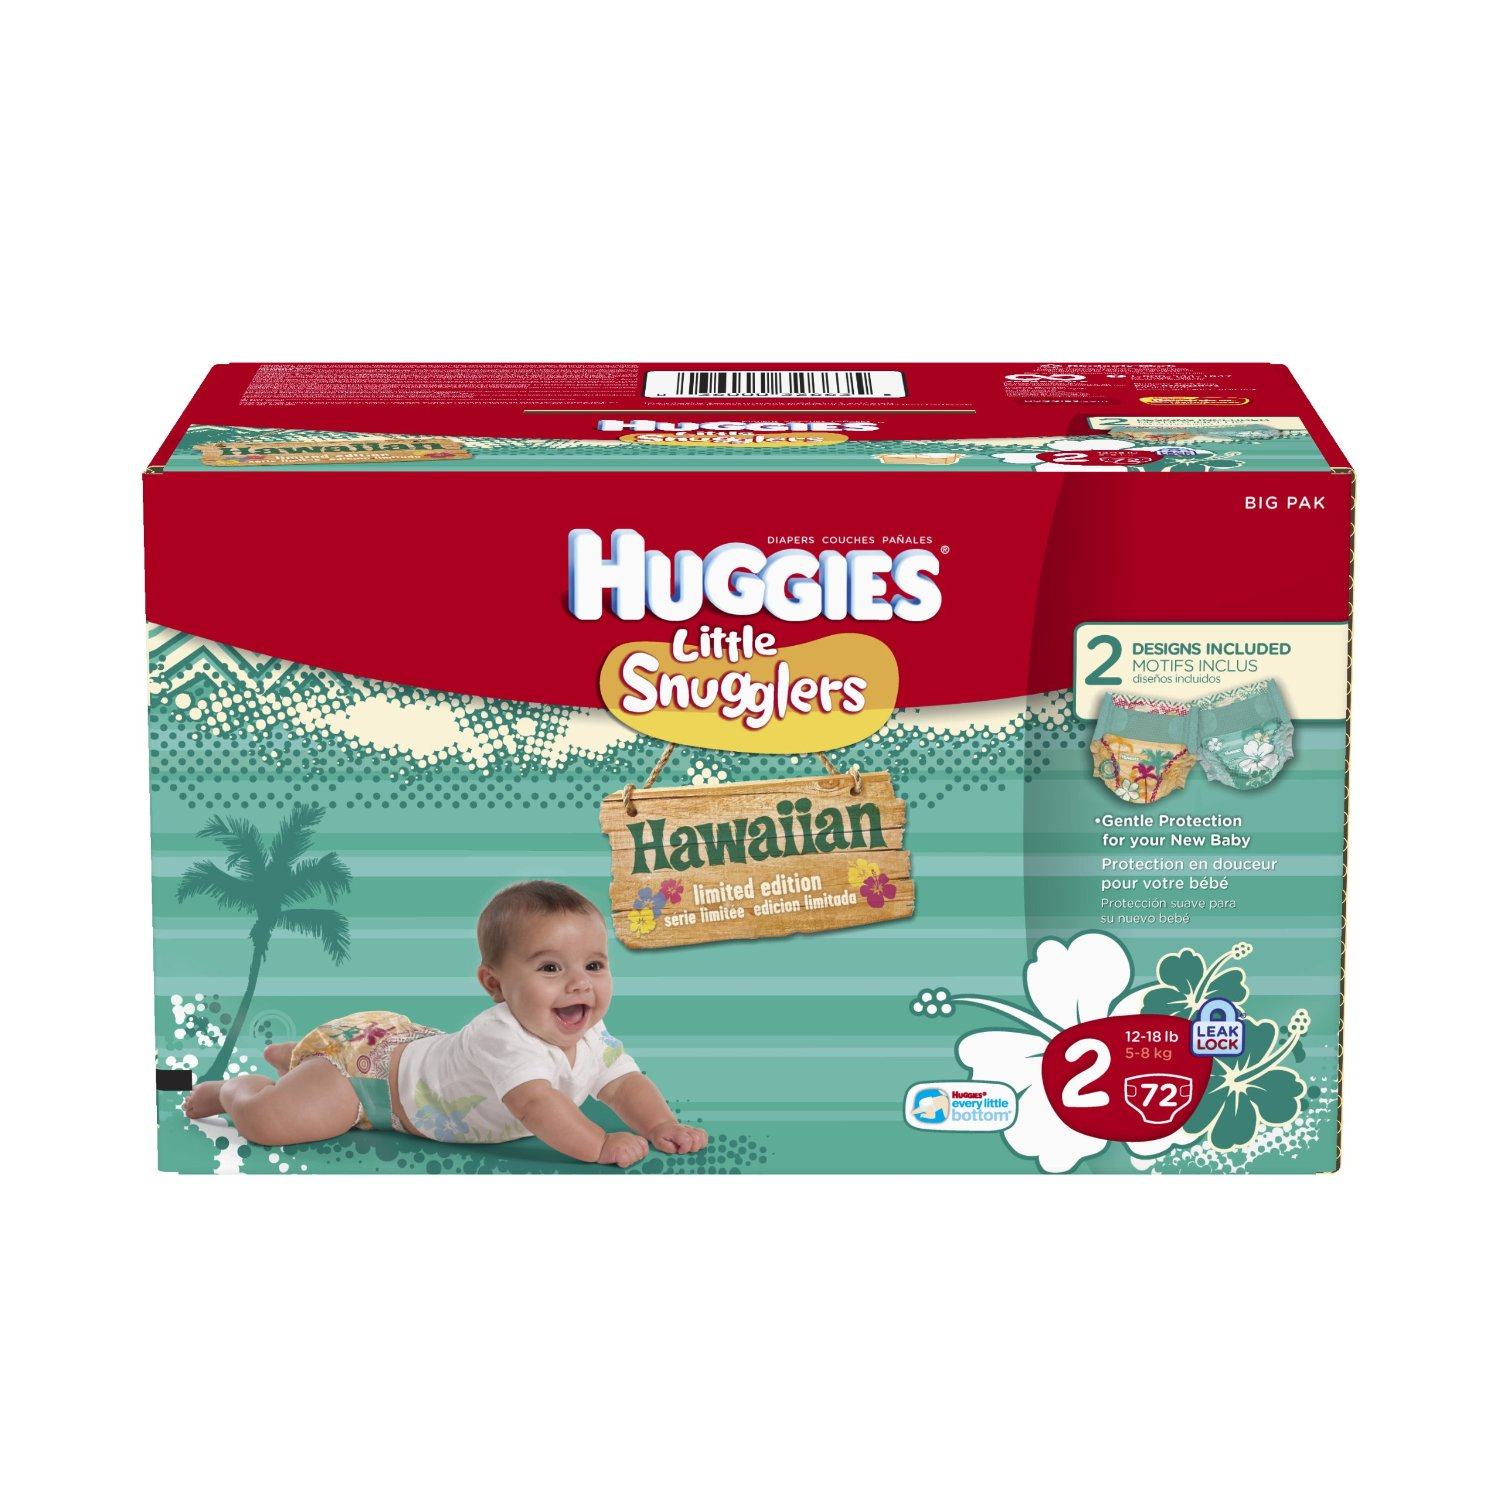 Hawaiian diapers